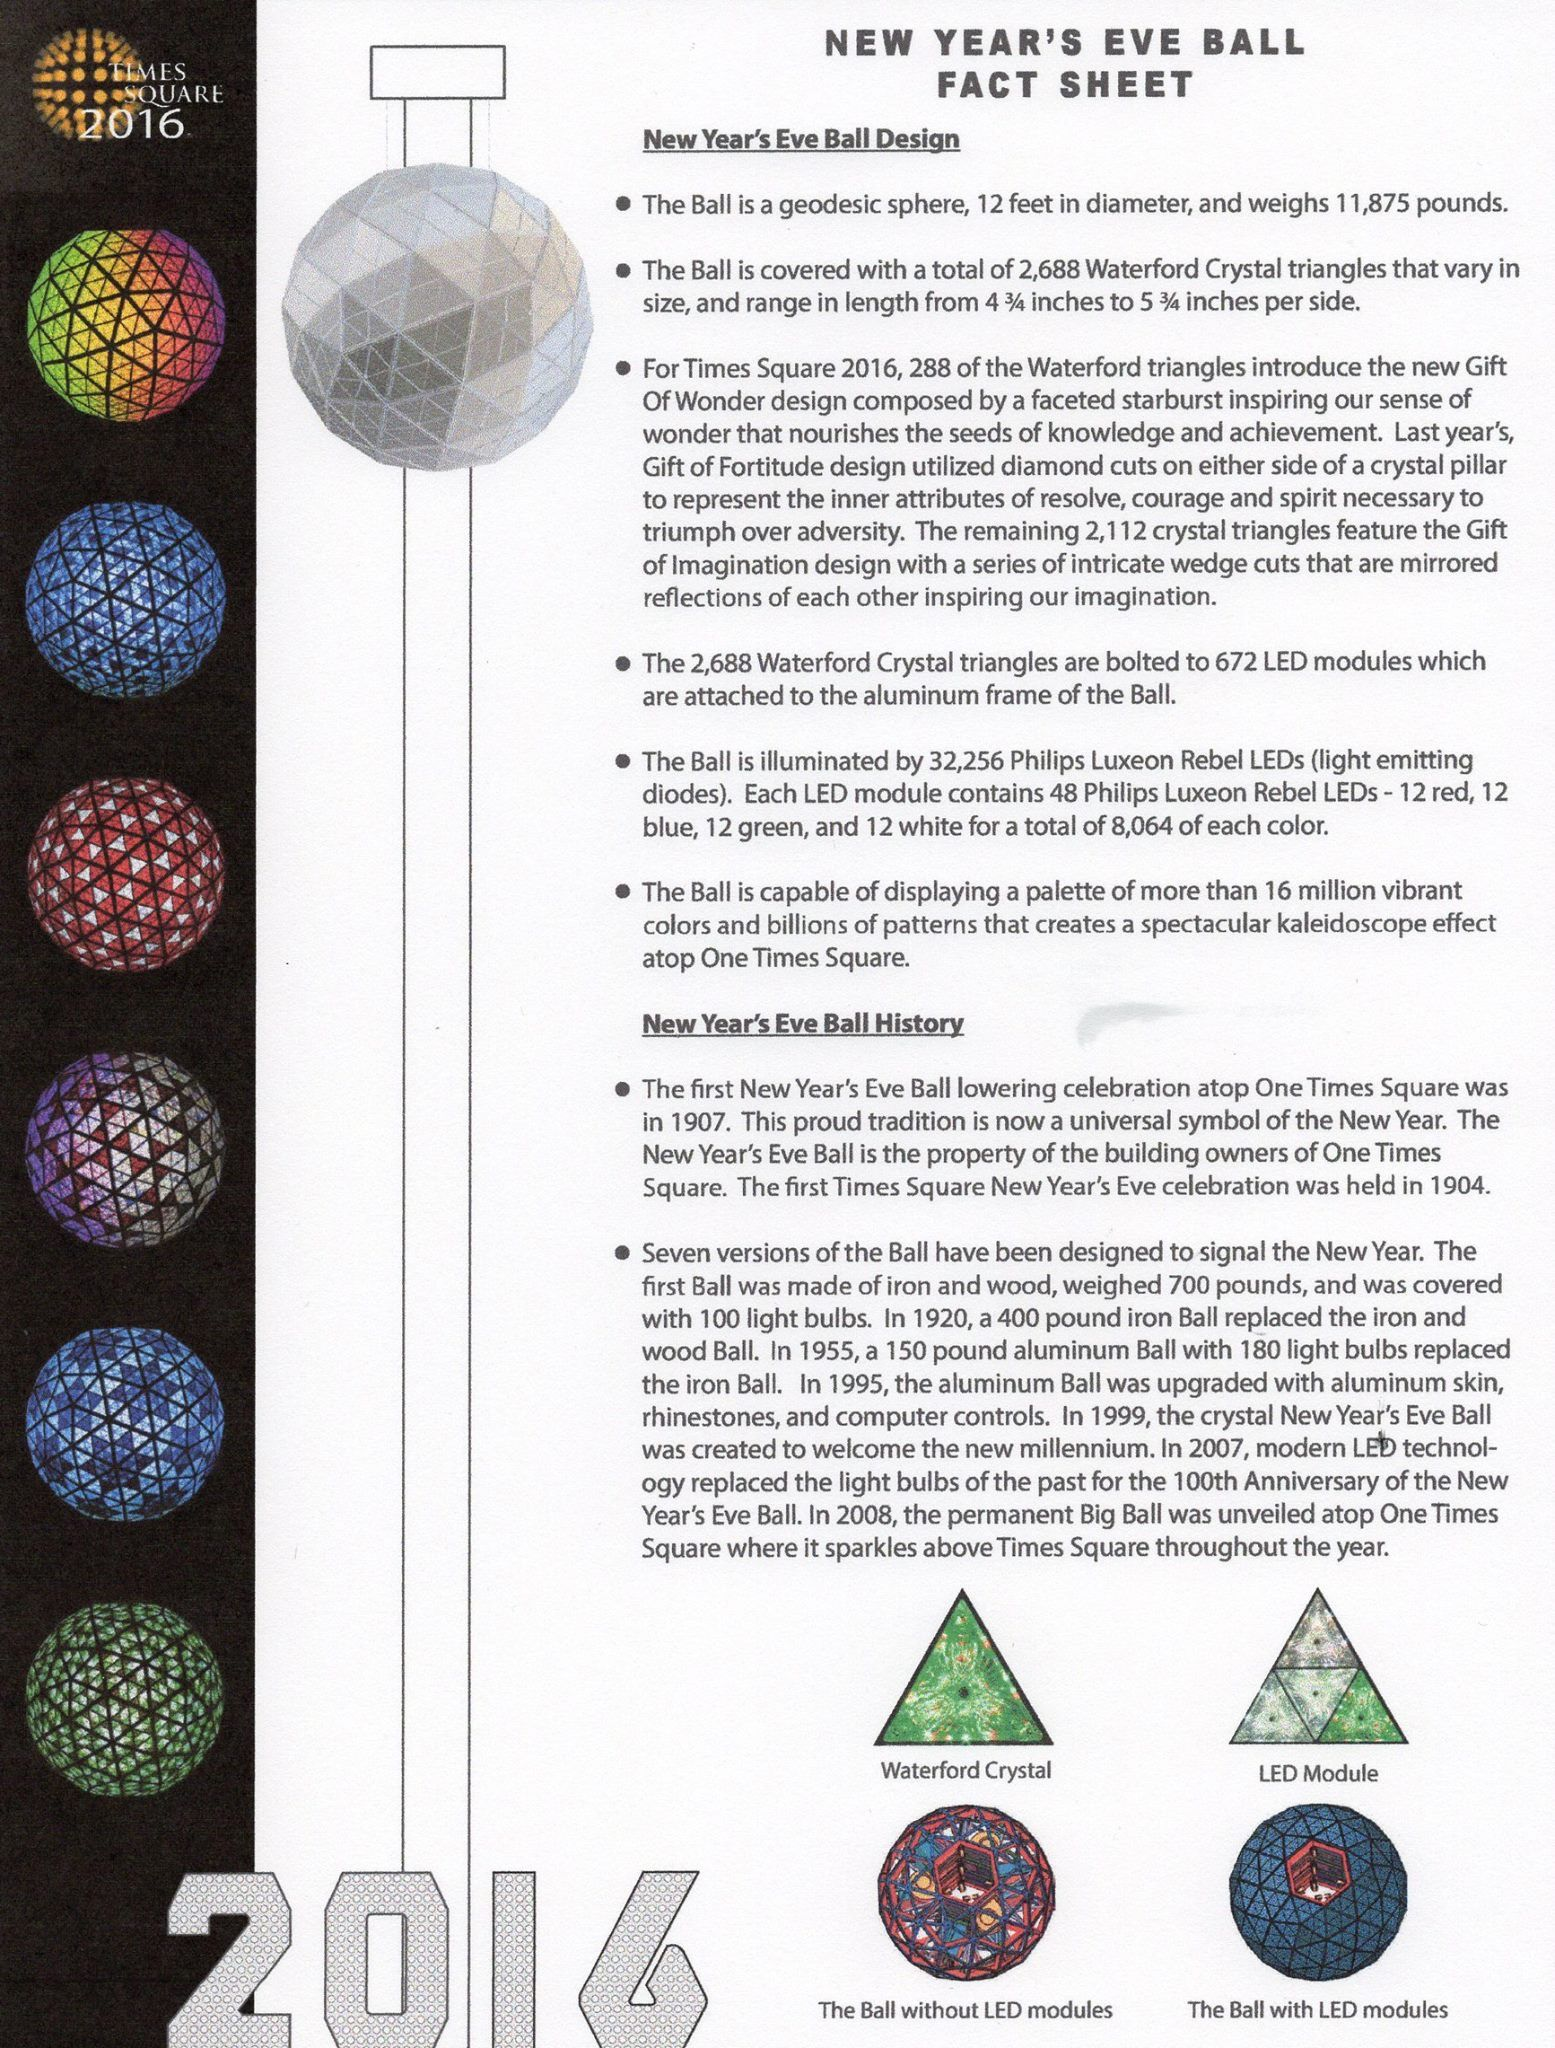 Pin By Julie Reilly On Misc Info New Years Eve Ball Times Square Ball Times Square Ball Drop